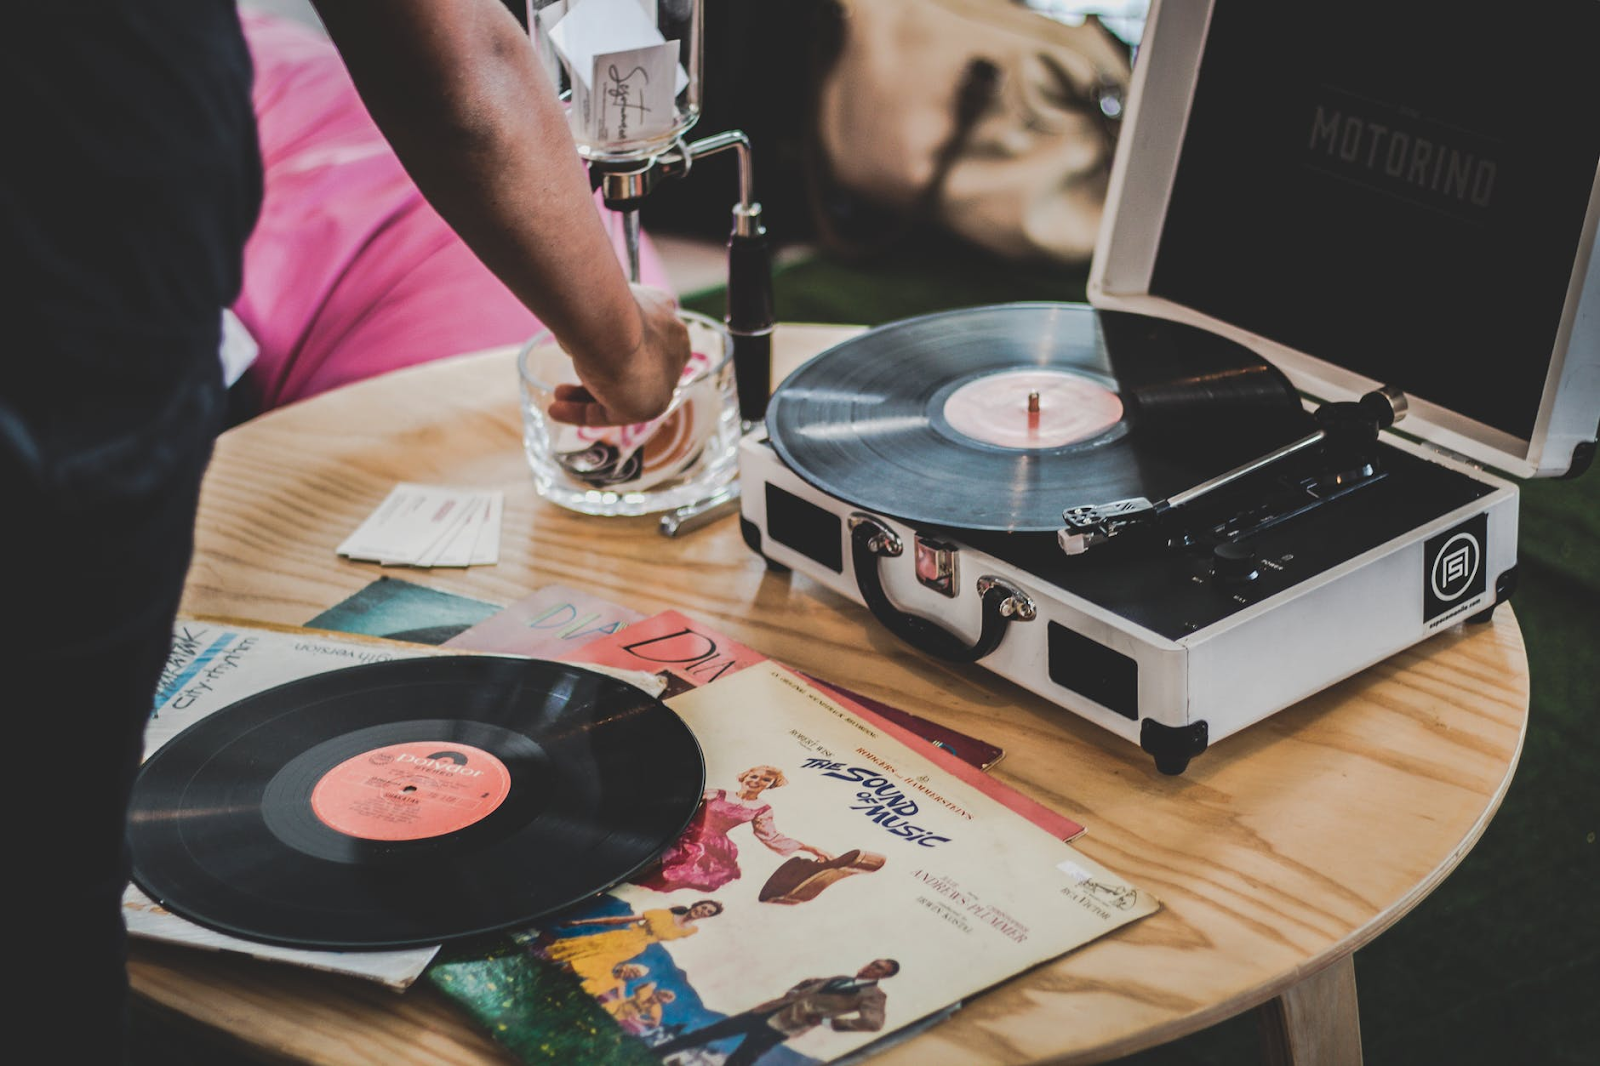 A vintage turntable playing a record in a millennial's house